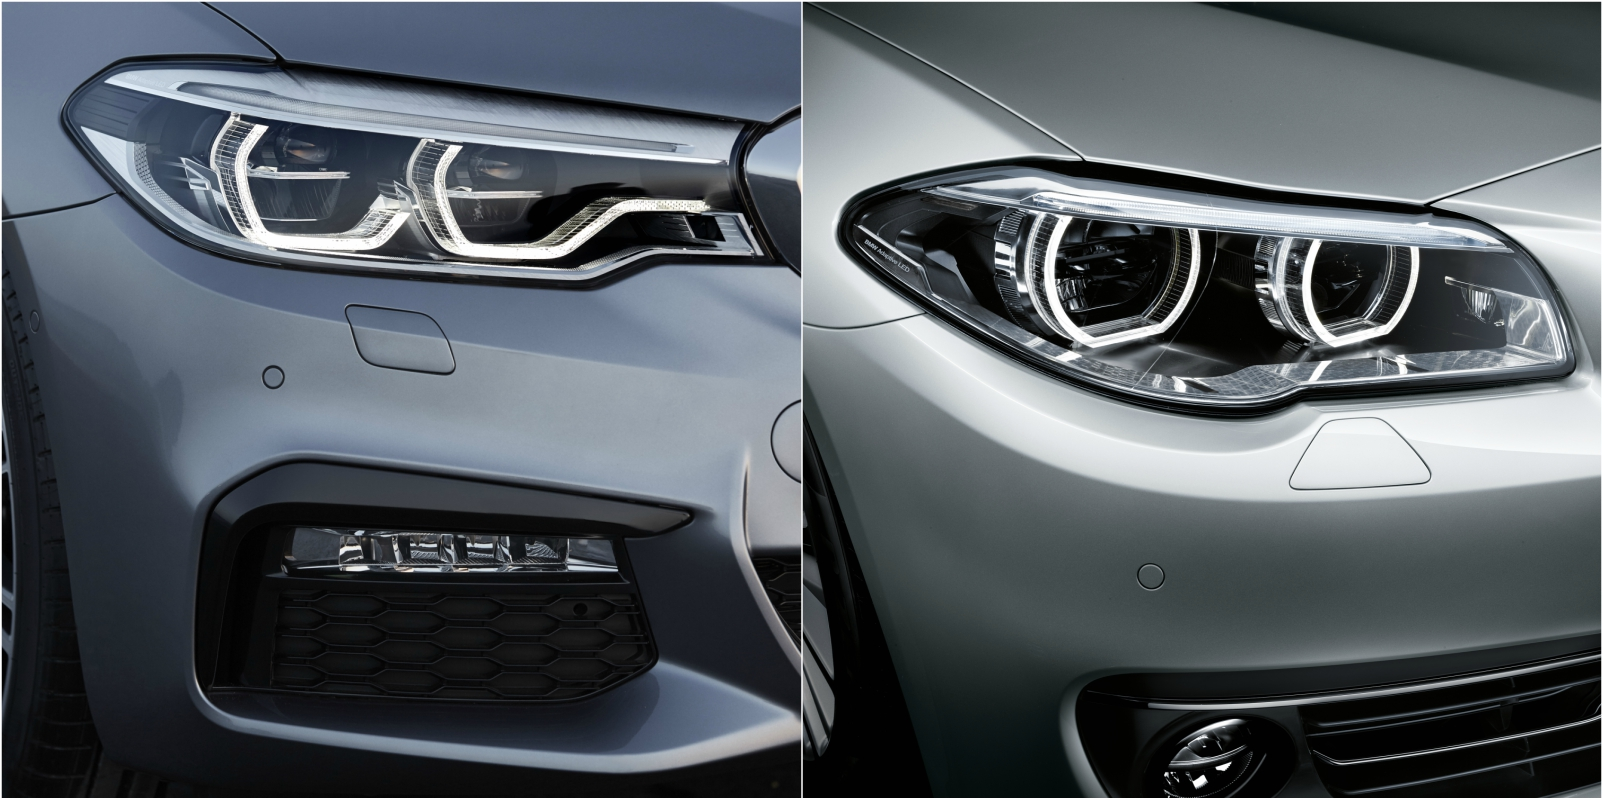 Sadly The Handsome New 2017 Bmw 5 Series Looks Exactly Like The 2016 Bmw 5 Series The Truth About Cars